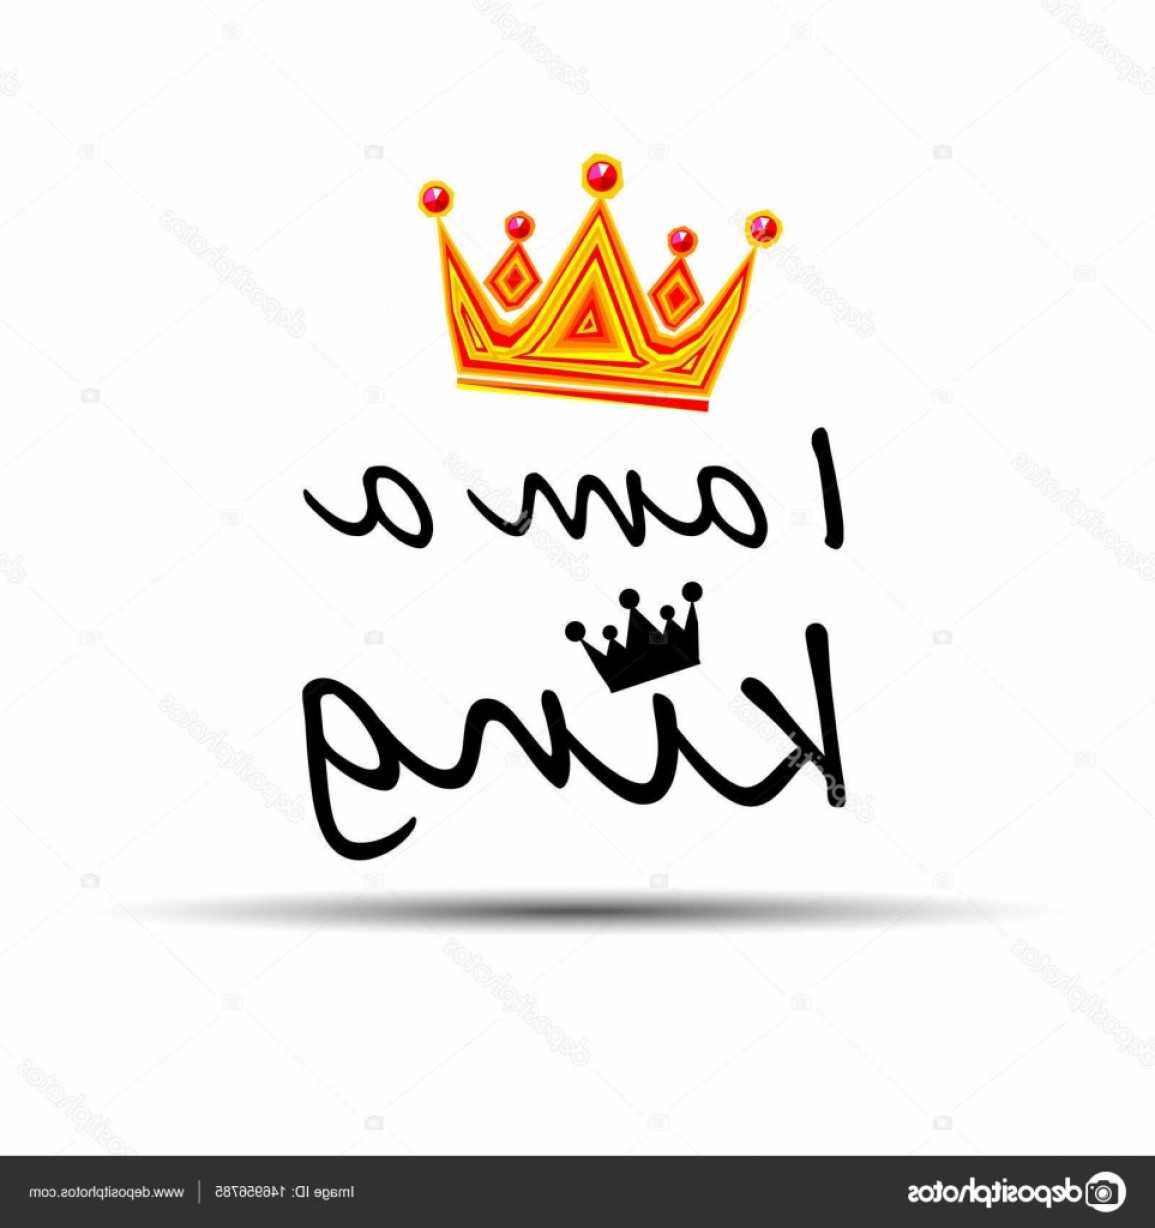 King And Queen Vector: Stock Illustration Crown Royal Queen Vector King